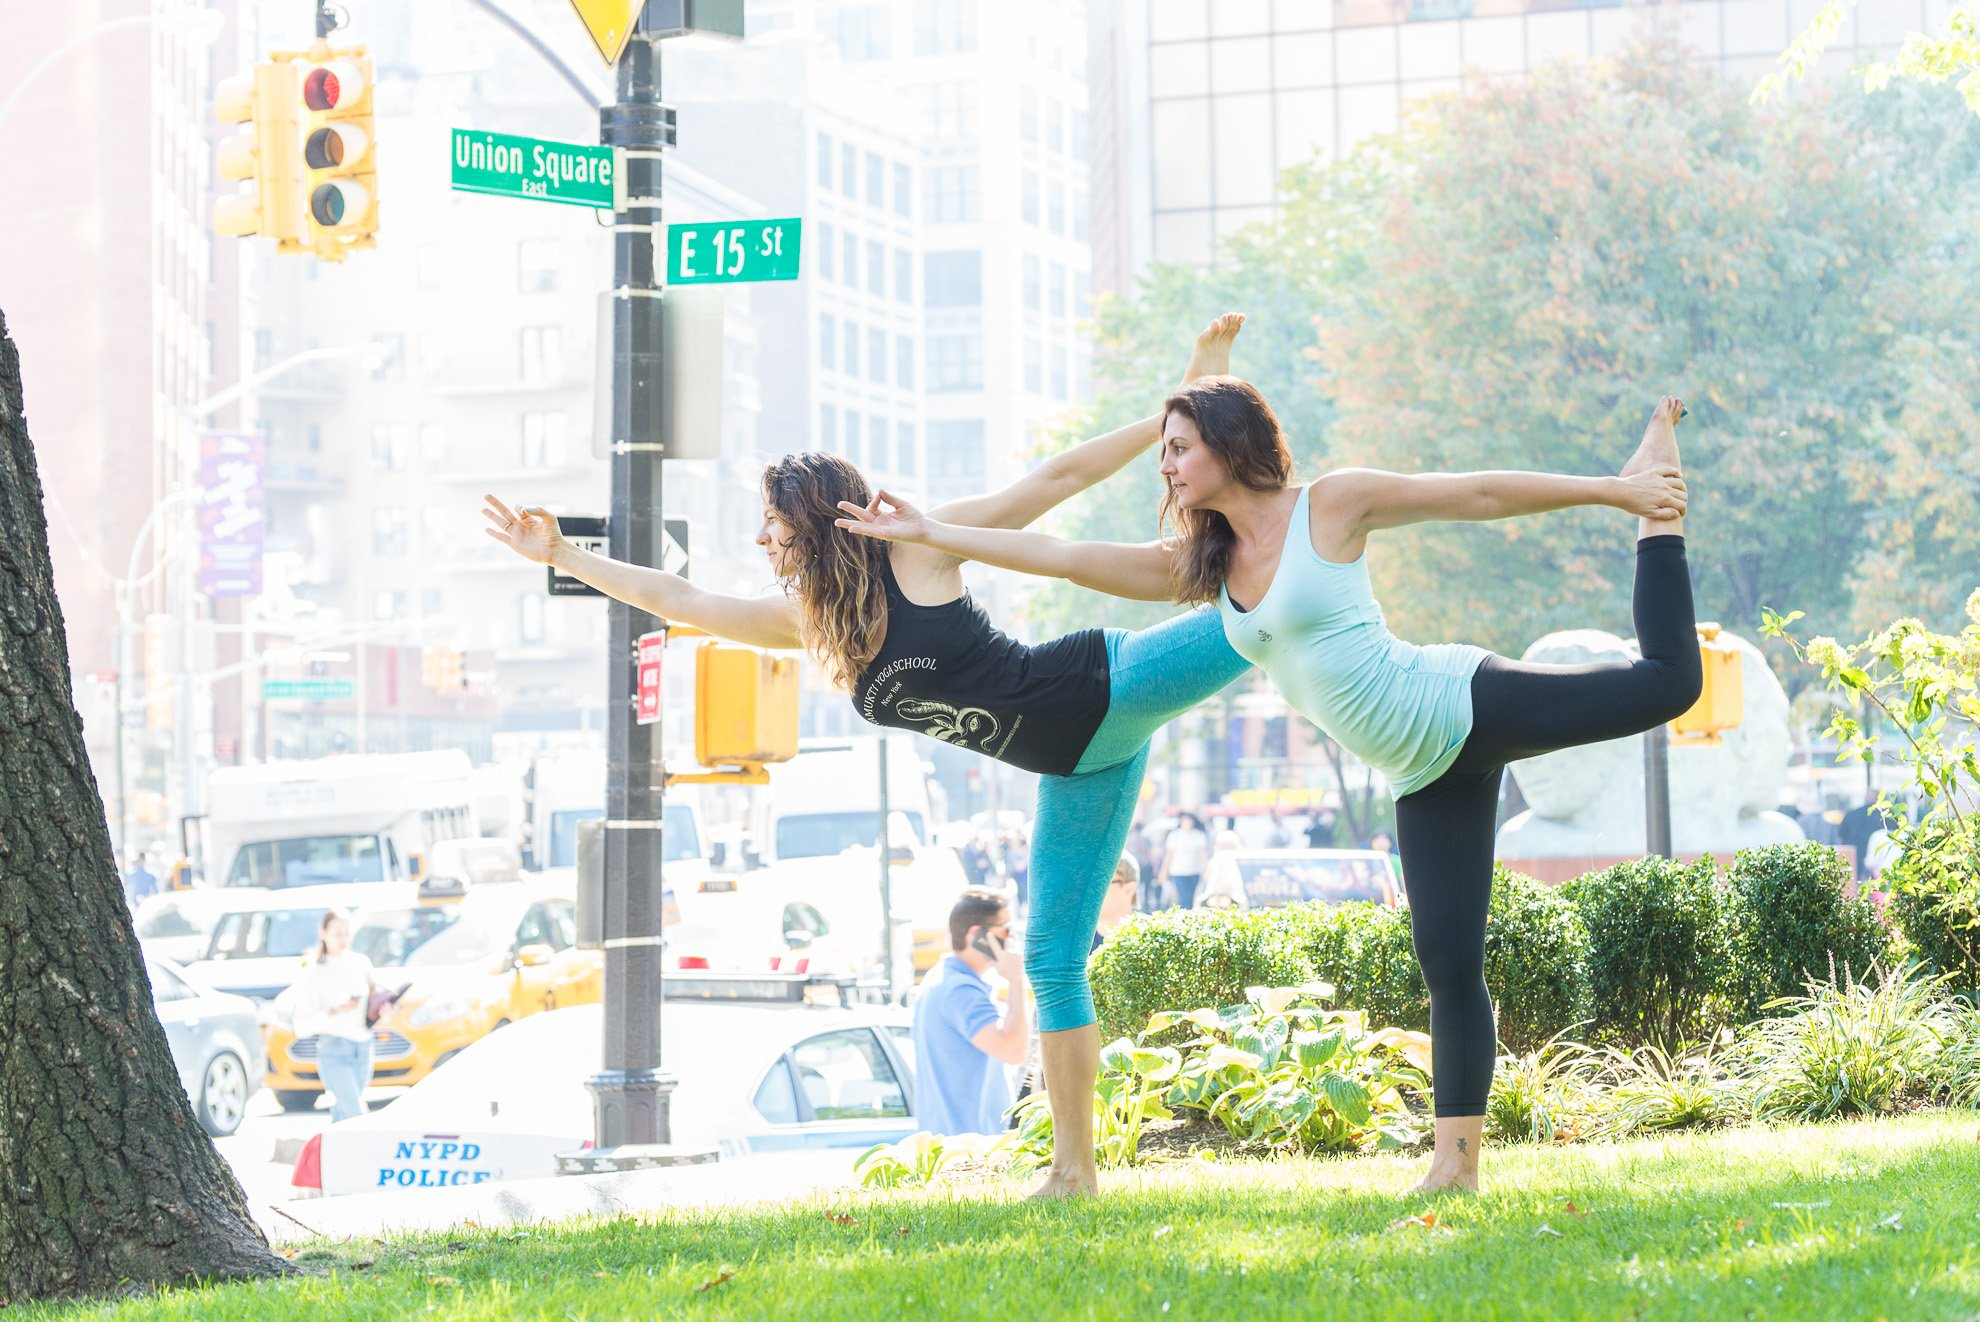 Yoga in New York - Mal was anderes...